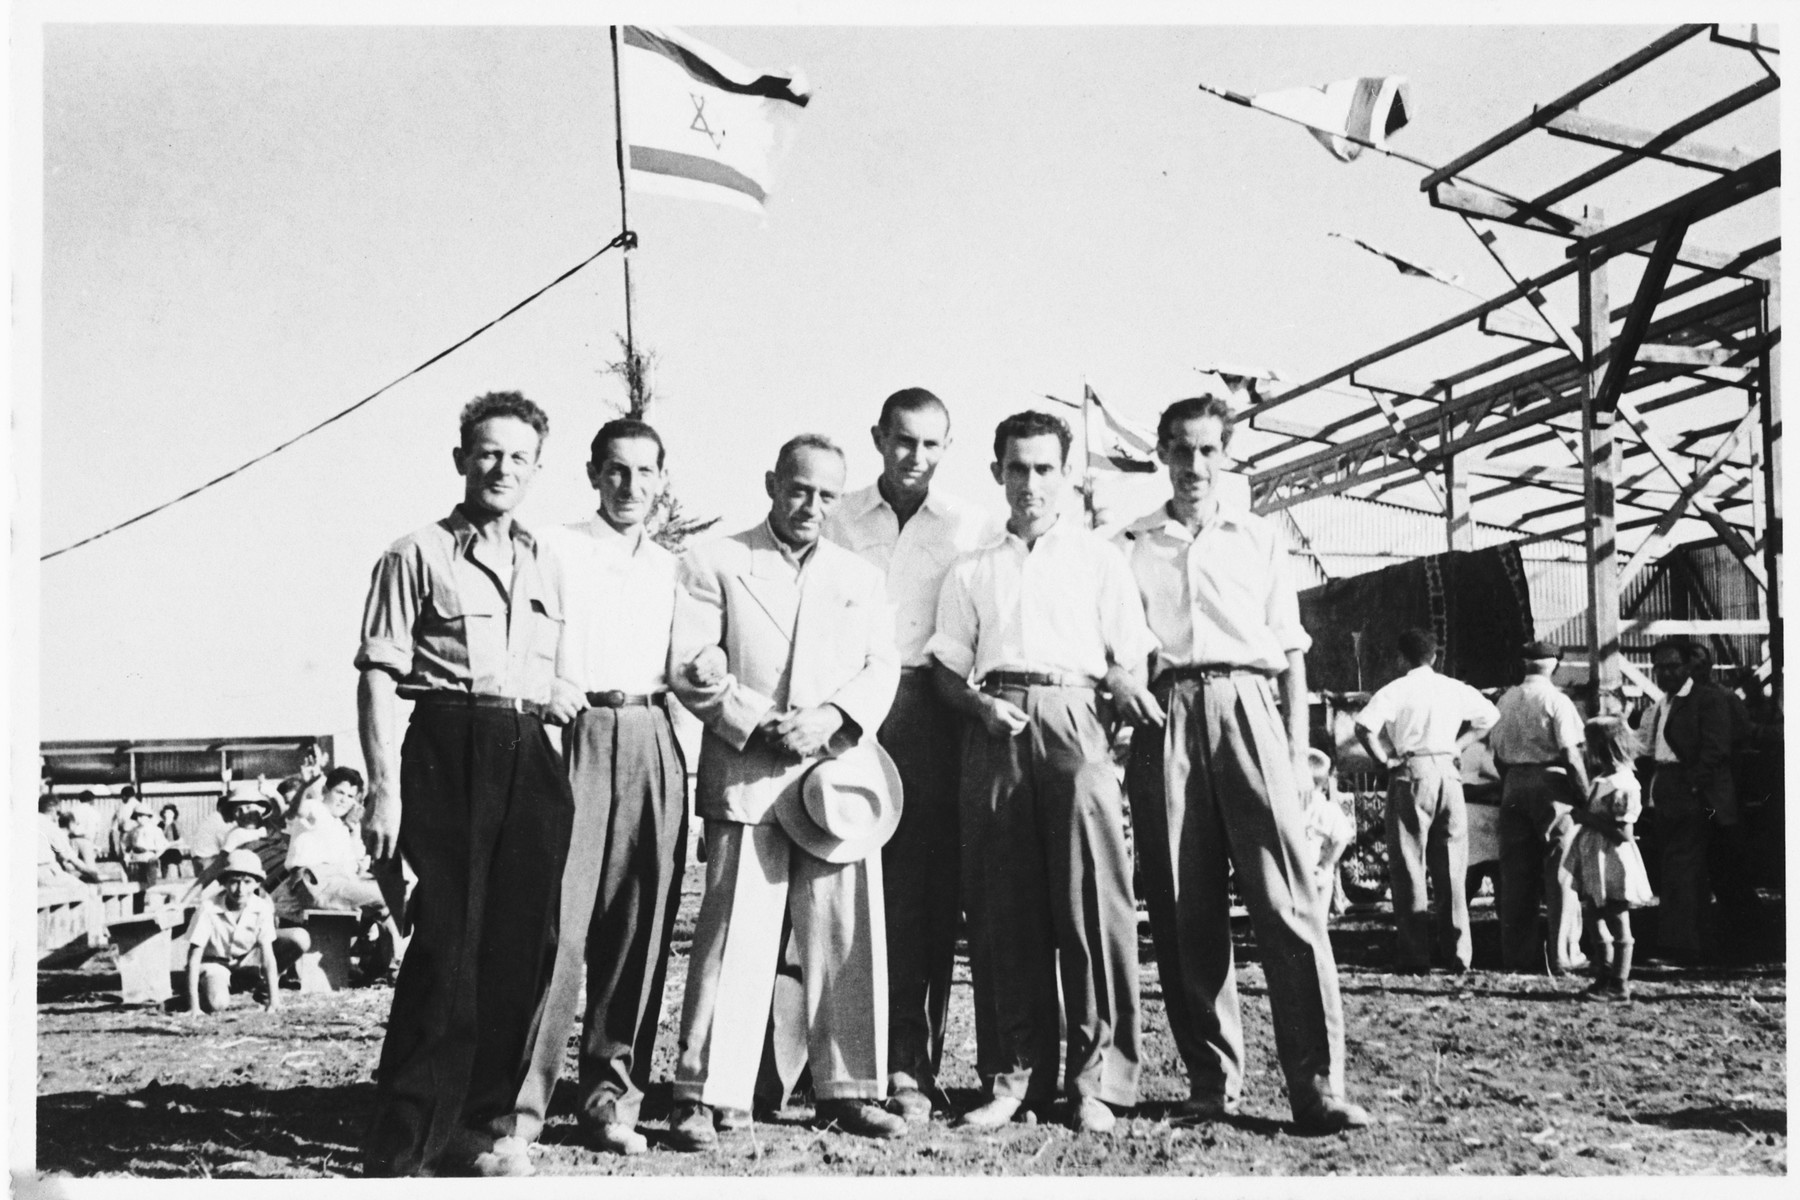 Group portrait of Jewish survivors from Yugoslavia on the new agricultural settlement, Moshav Kidron in Israel.  Among those pictured is Marko Spitzer (third from the left).